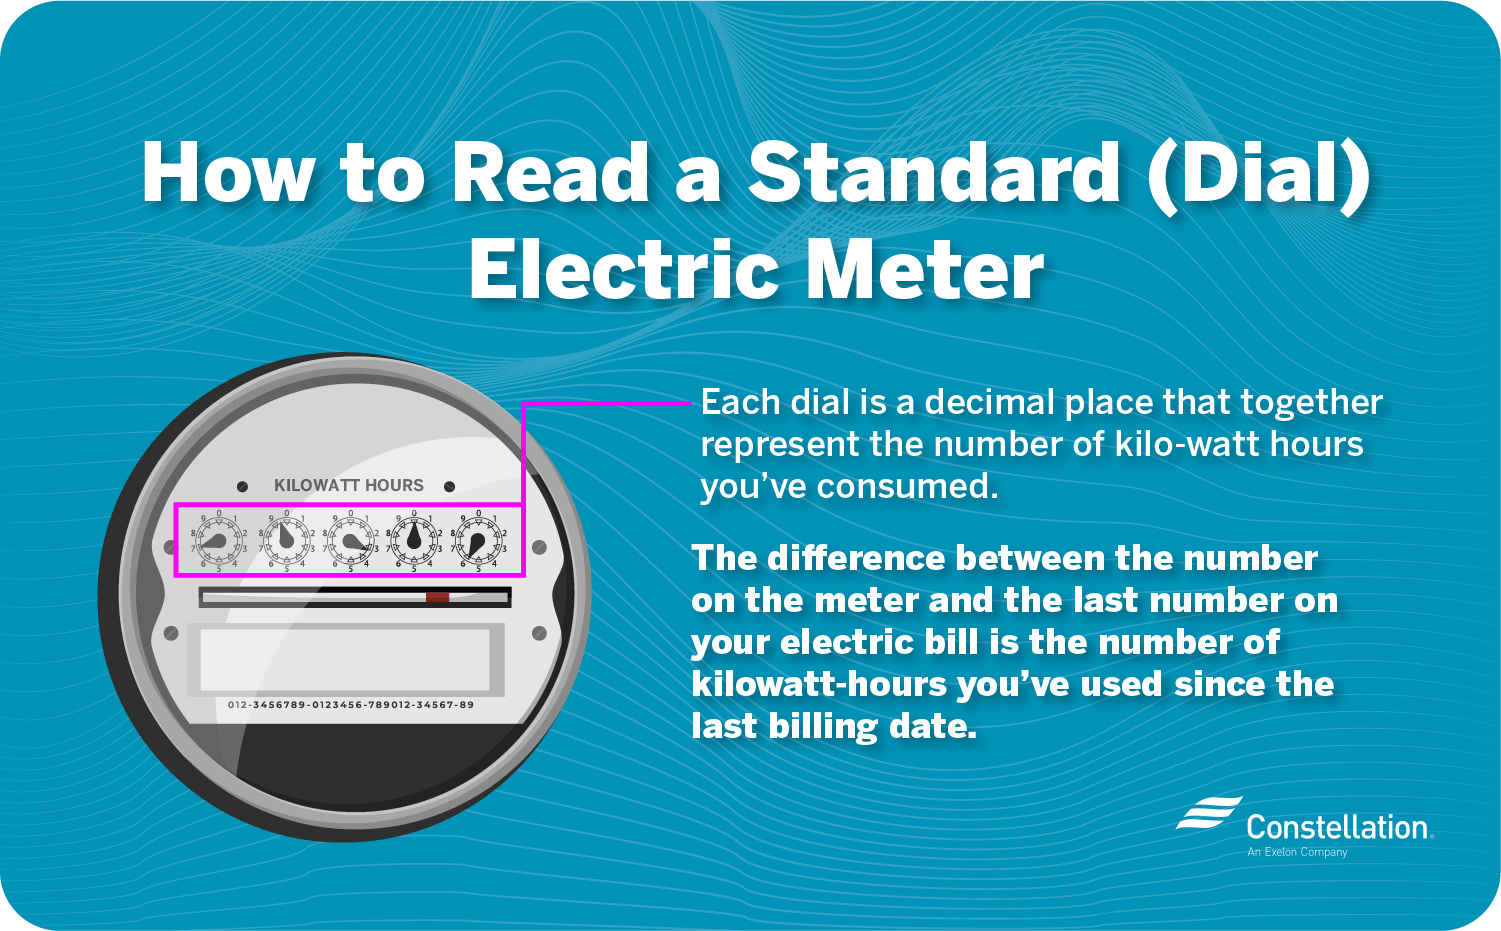 How to read a standard dial electric meter